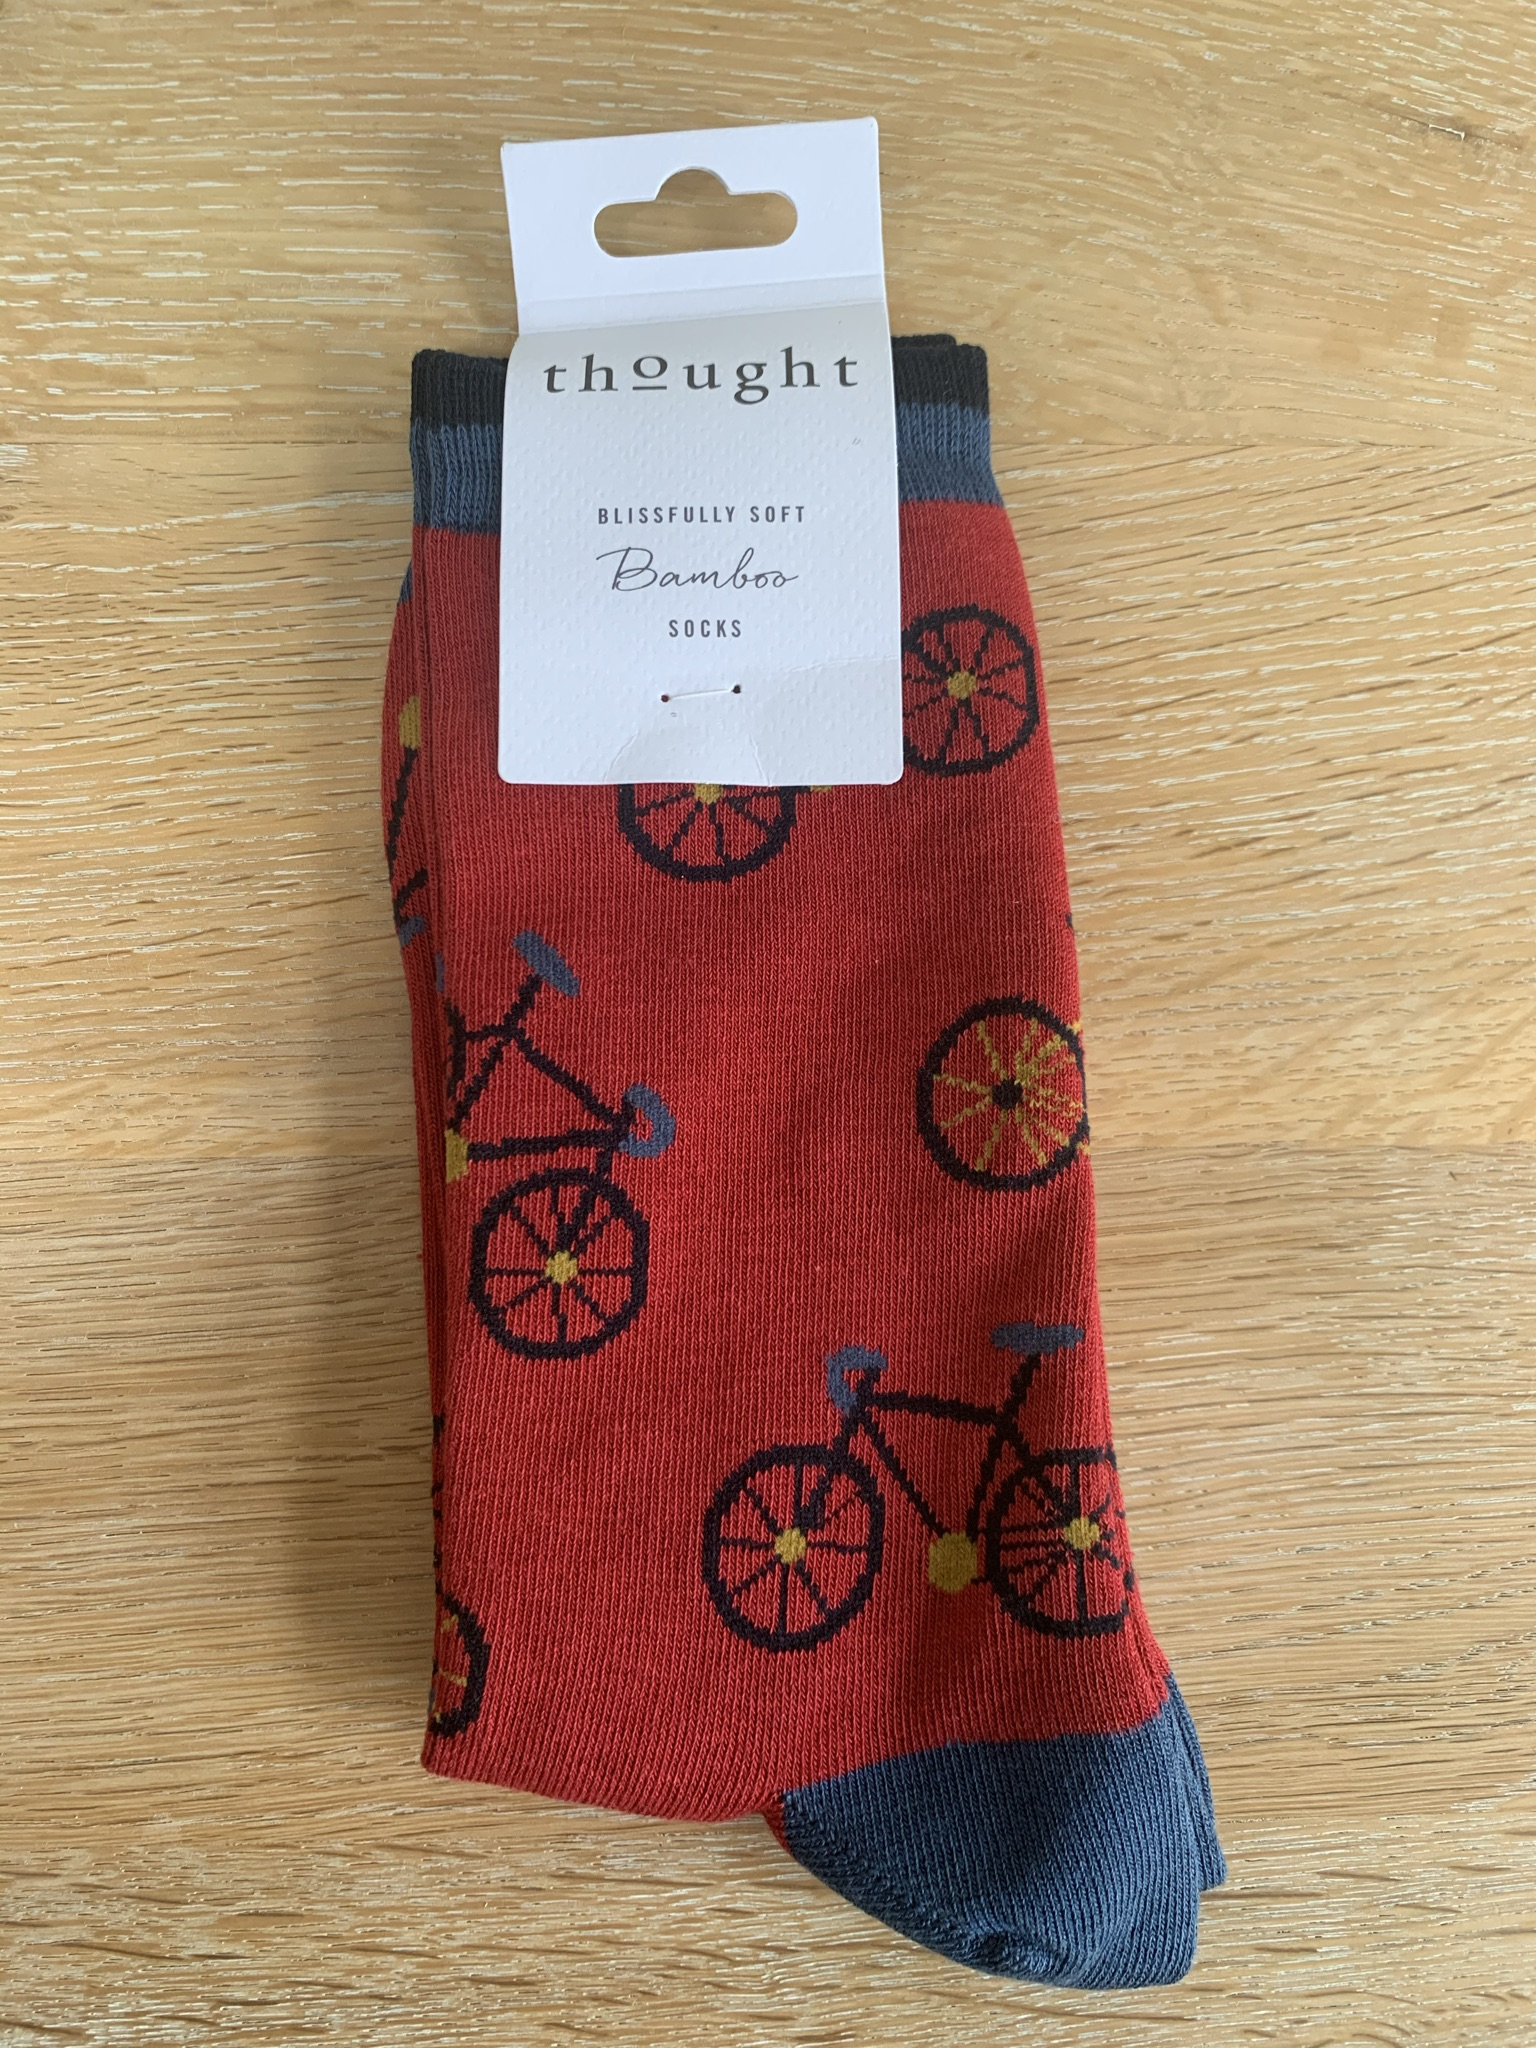 Thought Socks  - Available in 8 Designs